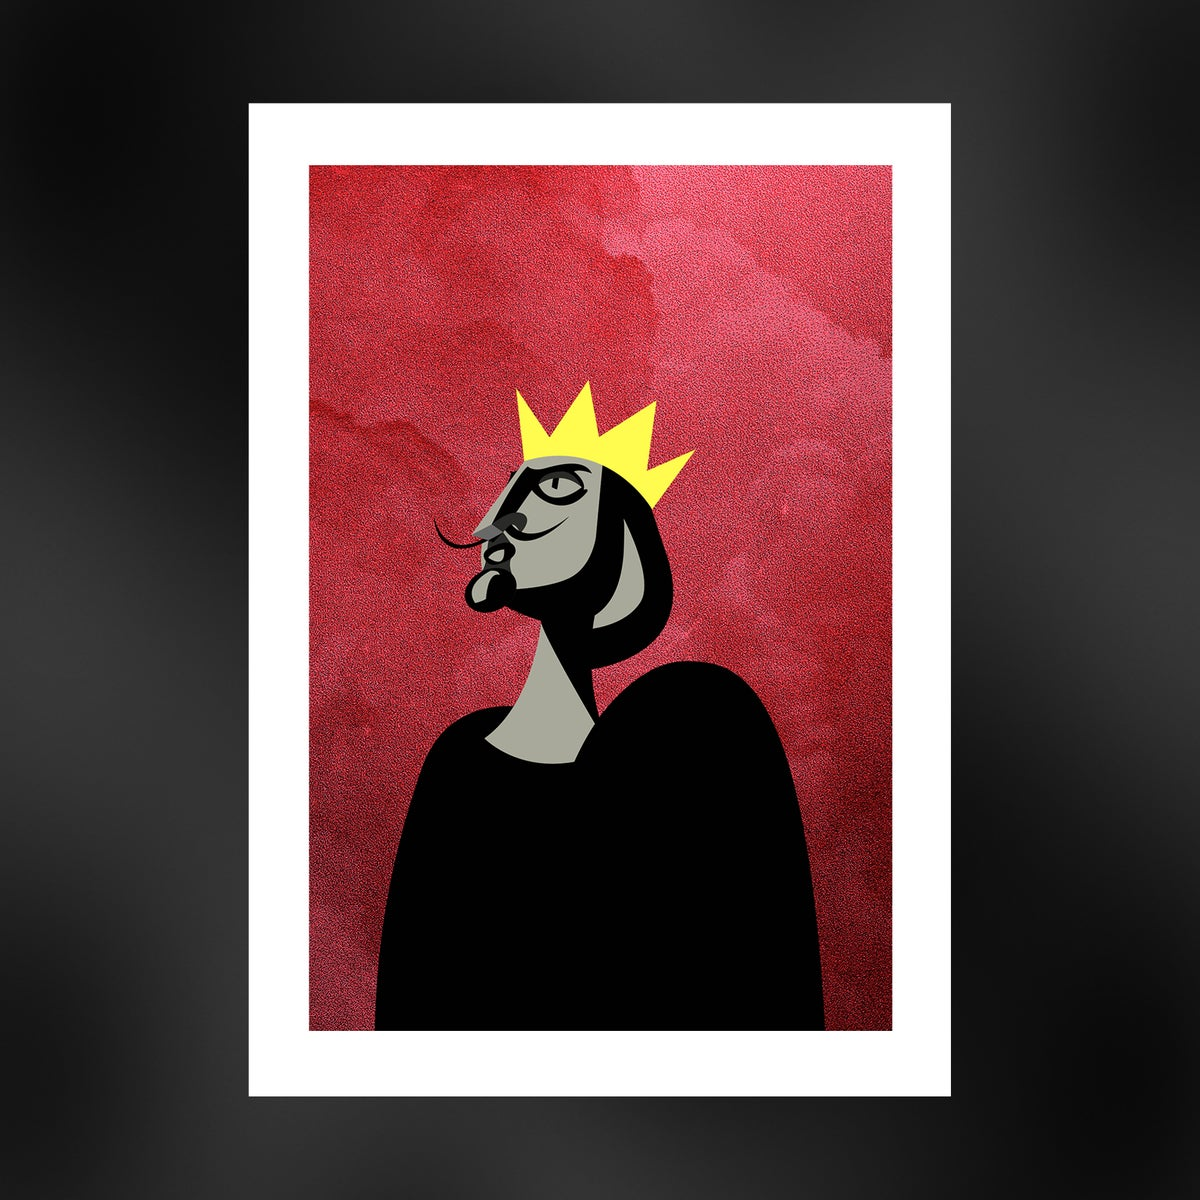 Image of Le Roi / The King